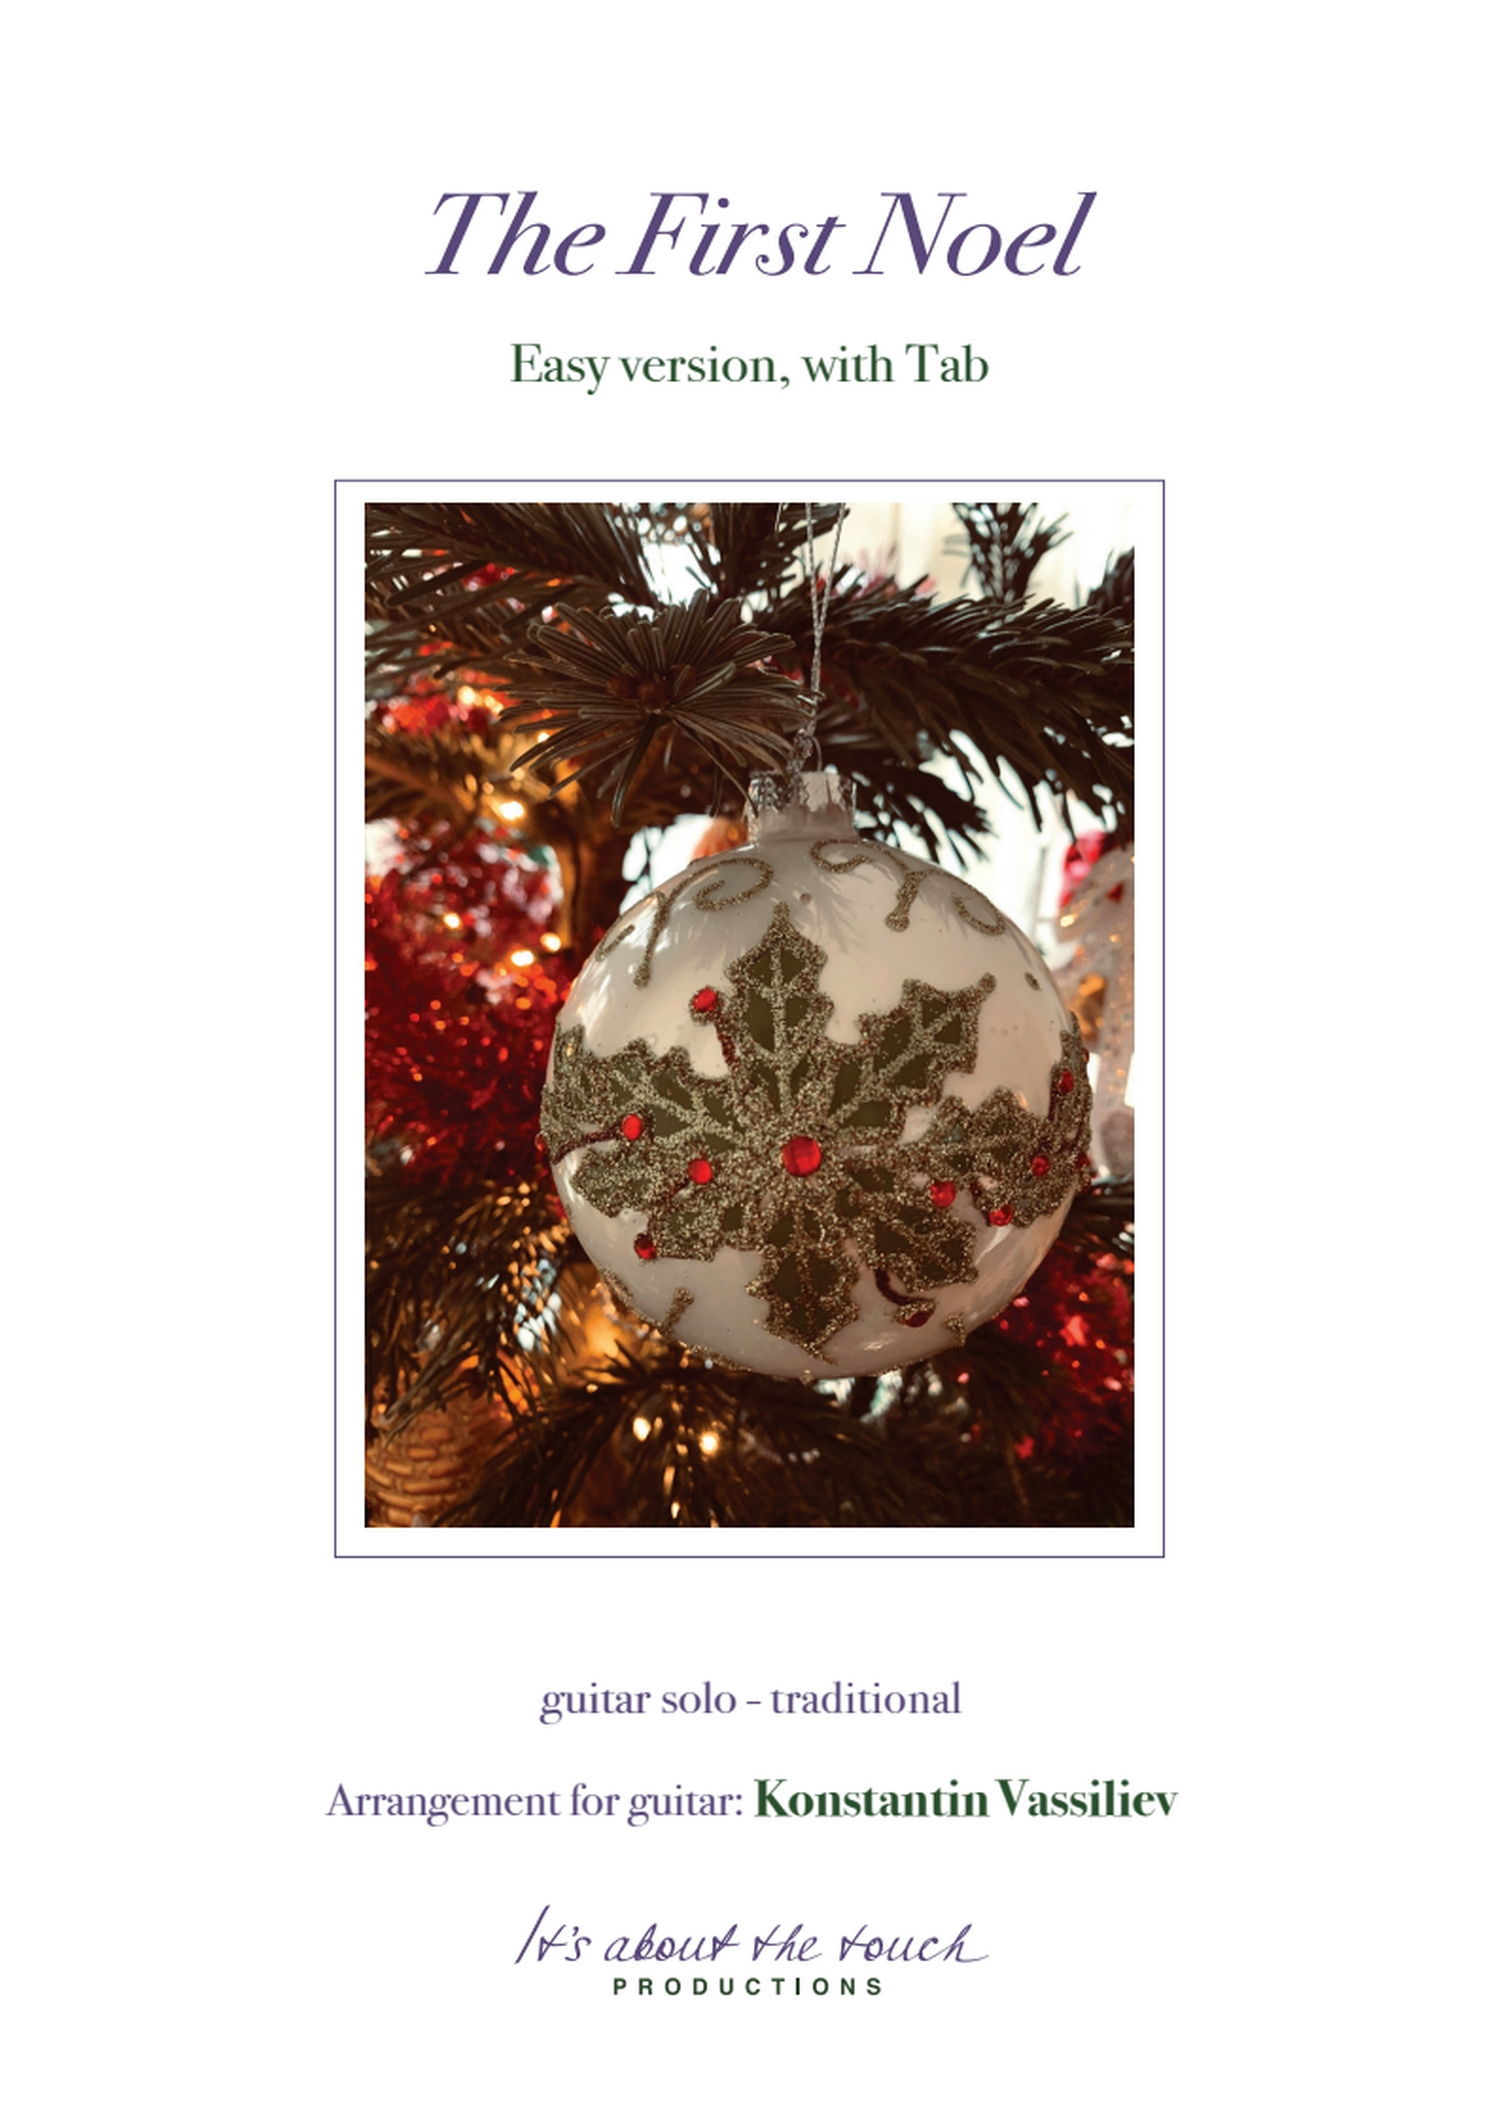 The First Noël - score with tab cover